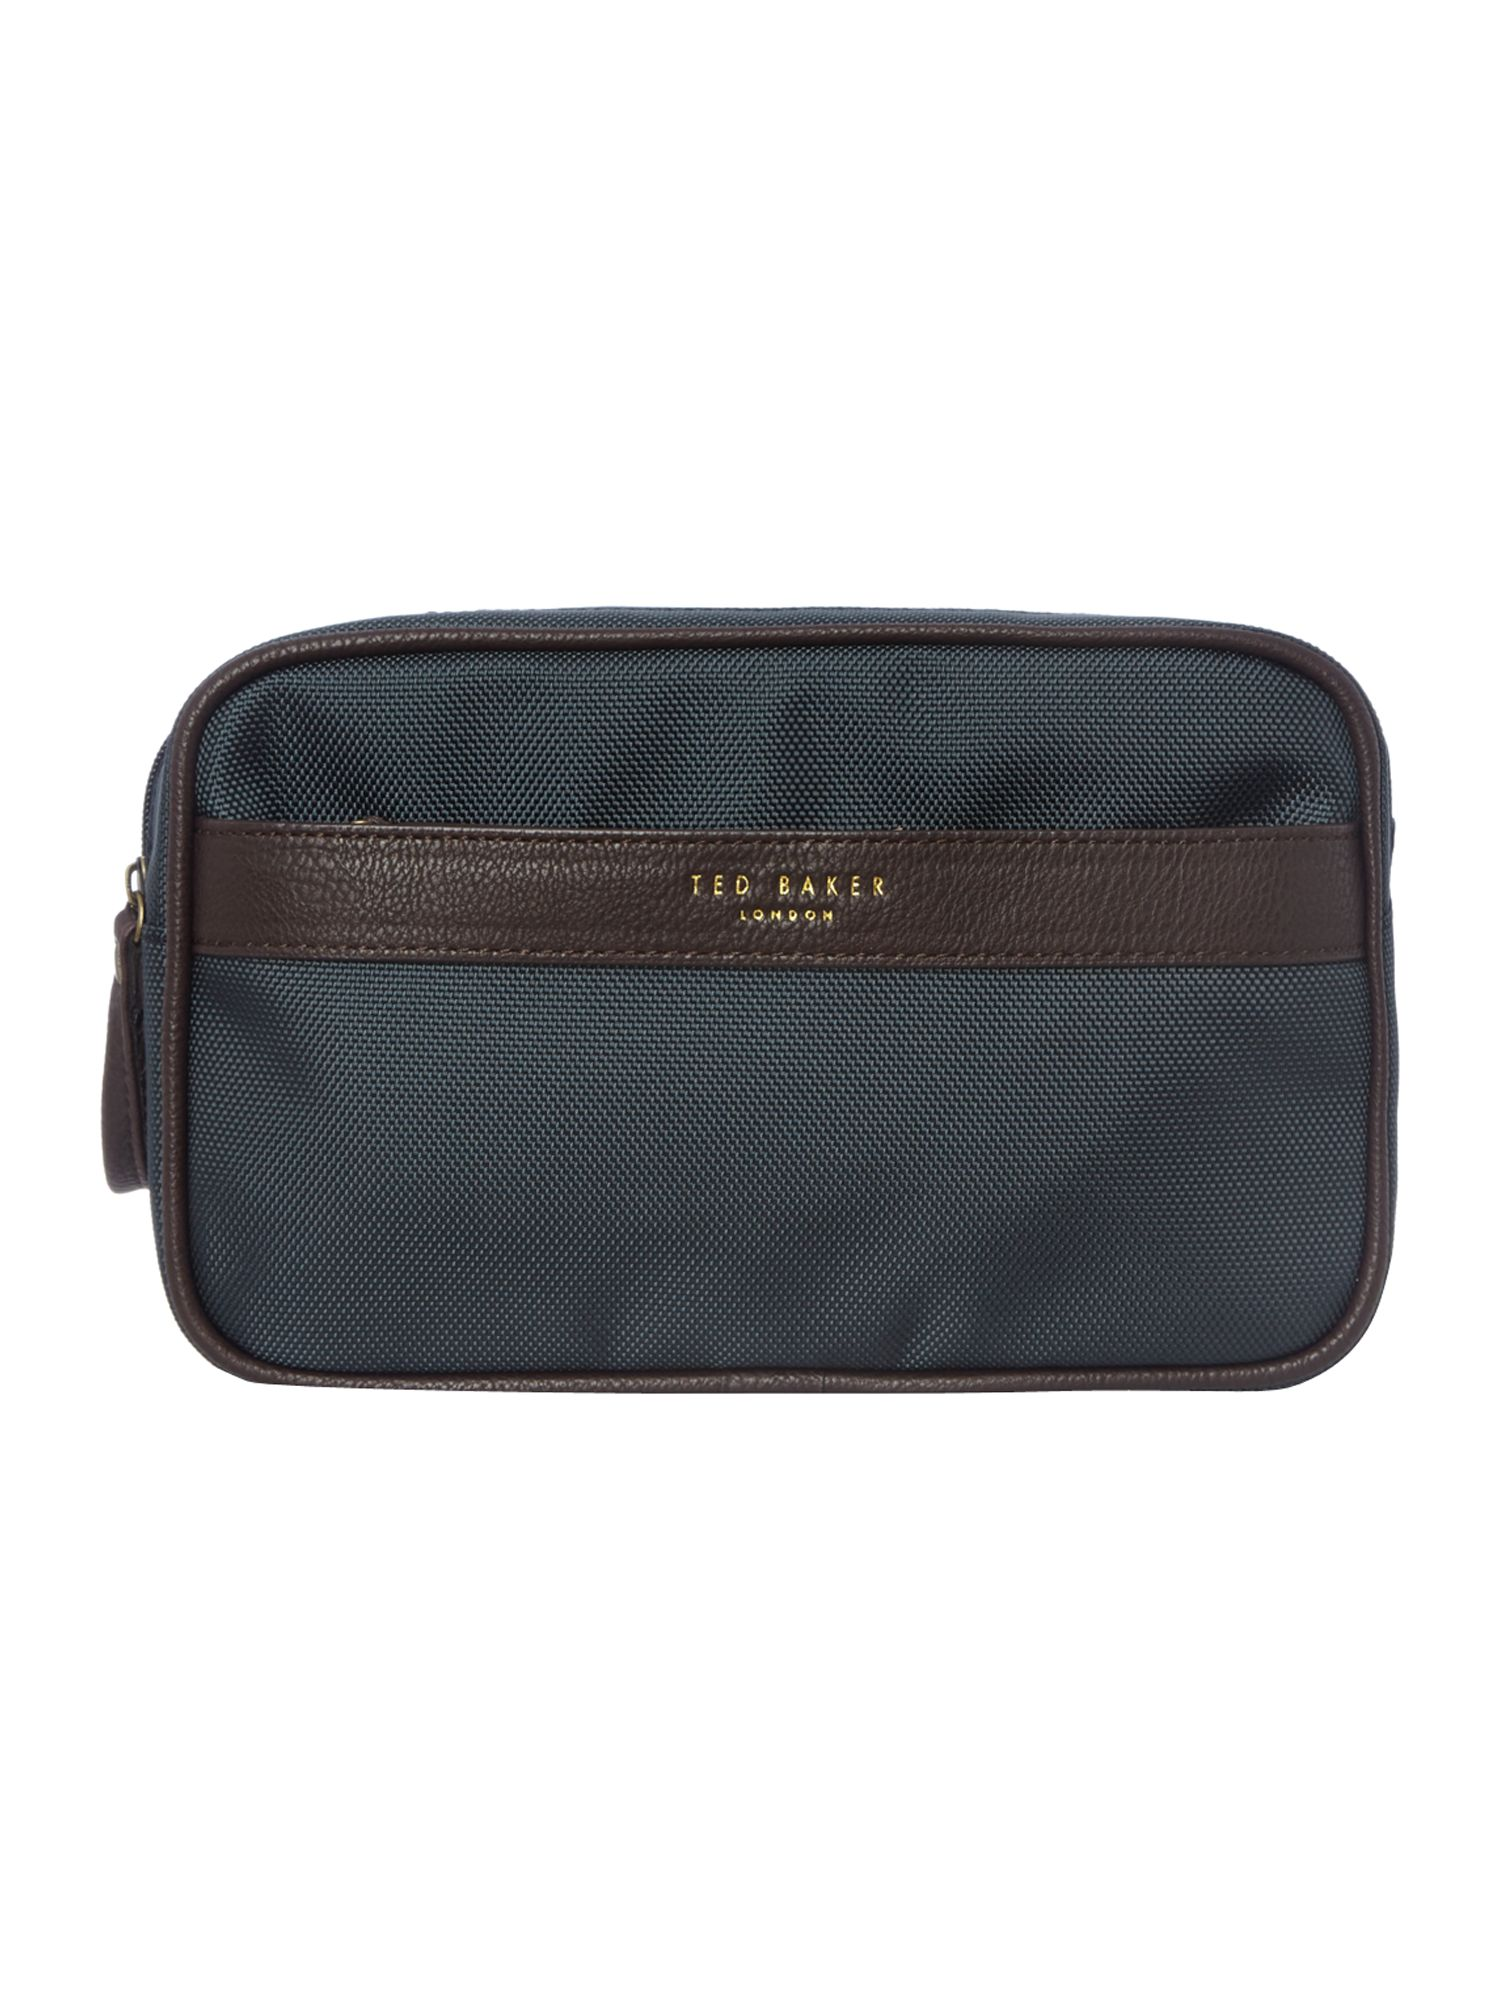 Nylon zip front wash bag